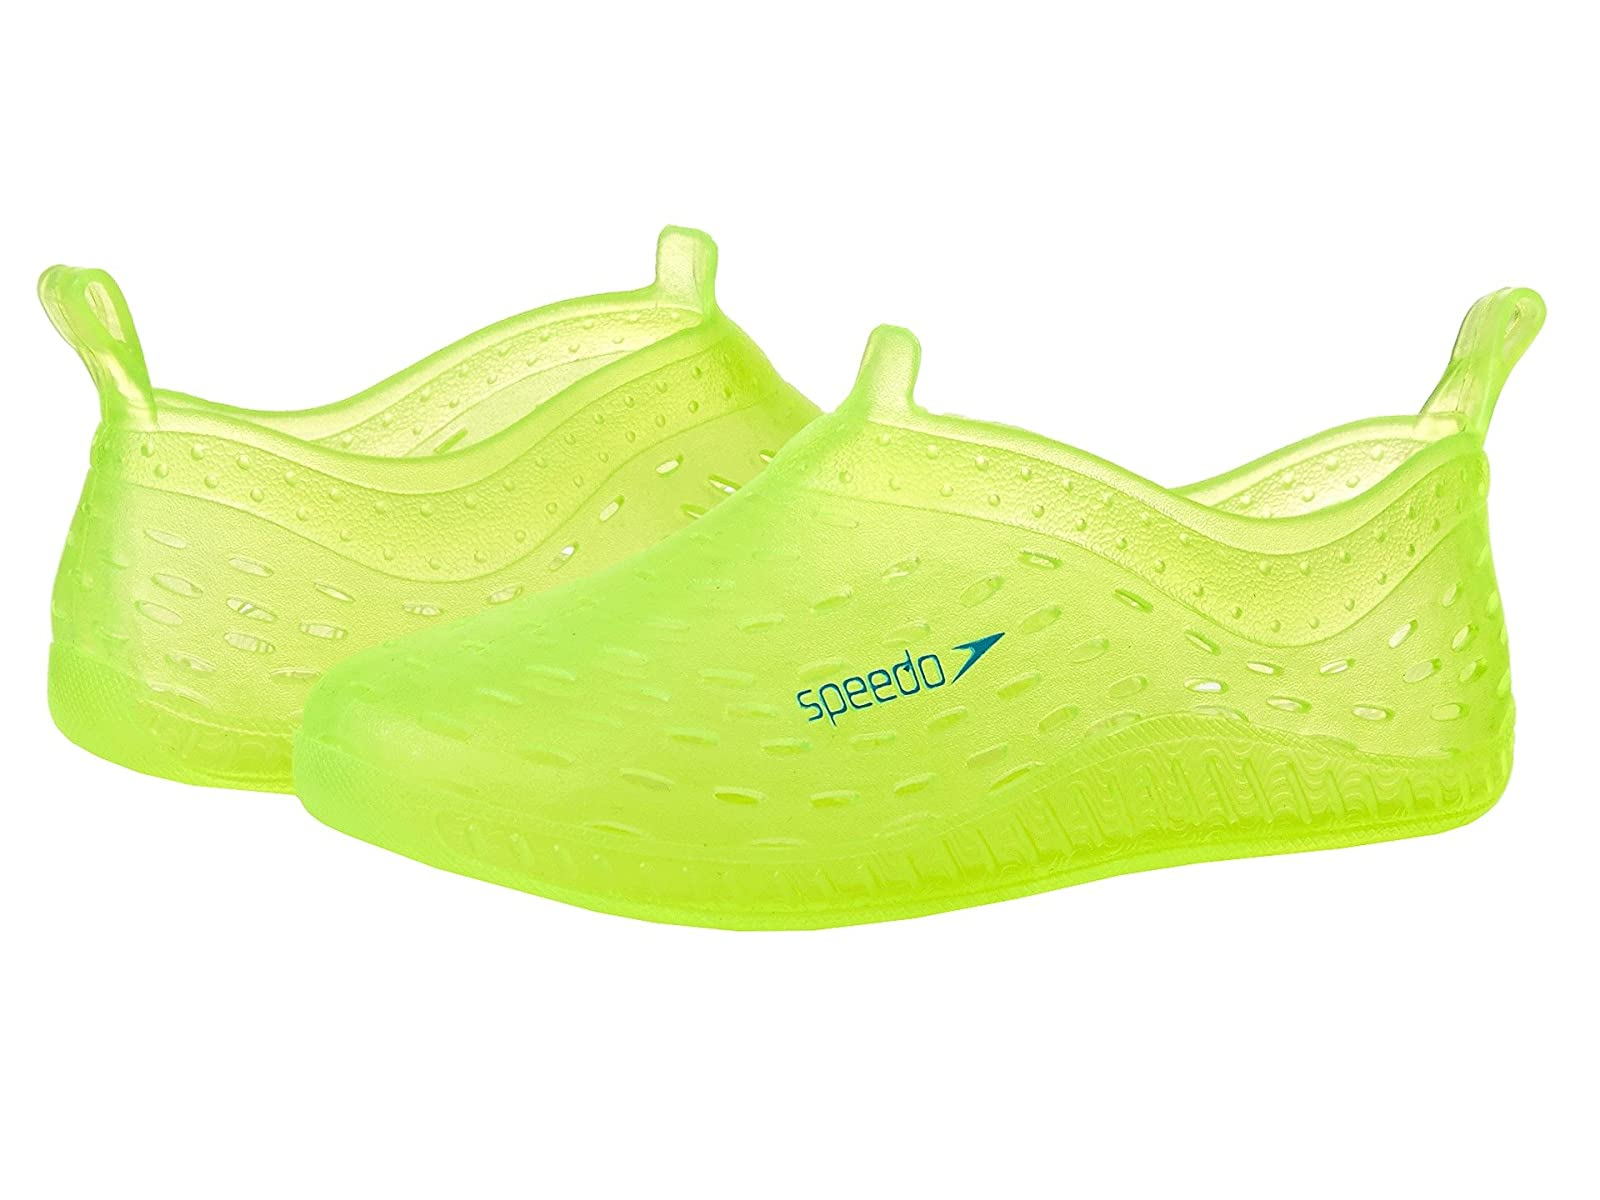 Speedo Kids Exsqueeze Me Jelly (Toddler/Little Kid)Atmospheric grades have affordable shoes